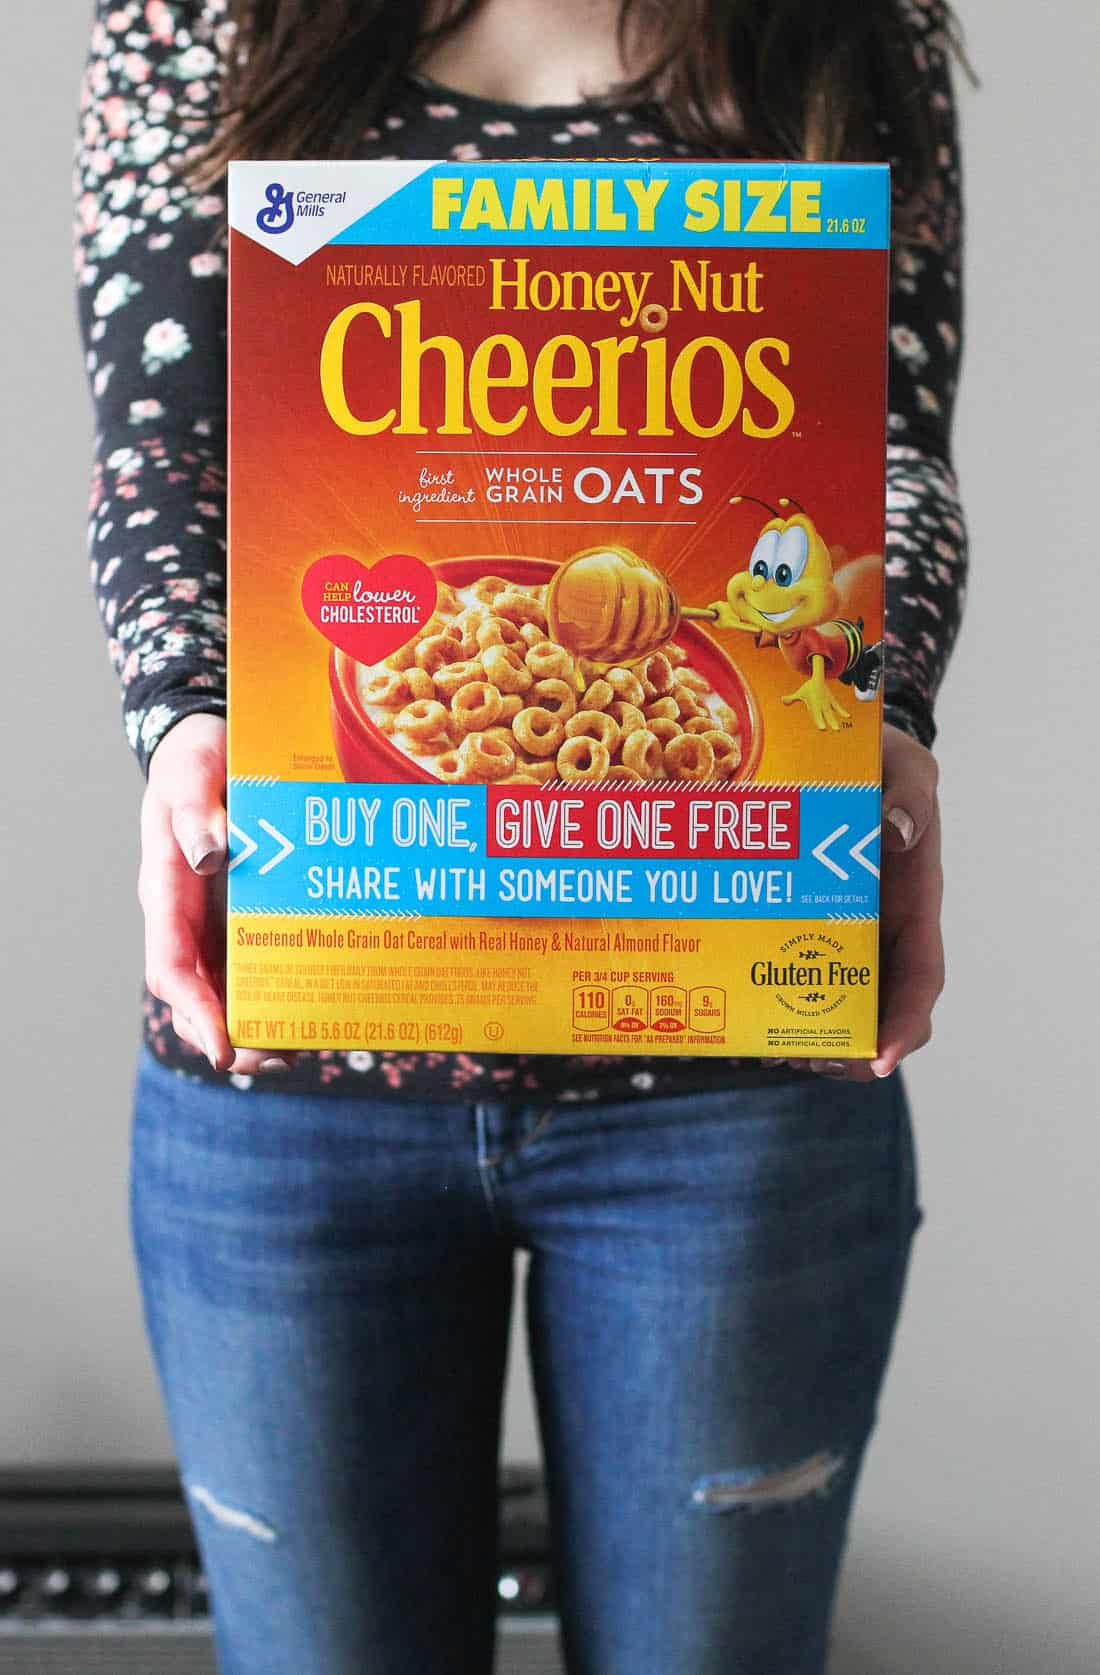 A woman holding a box of family size Honey Nut Cheerios in front of her